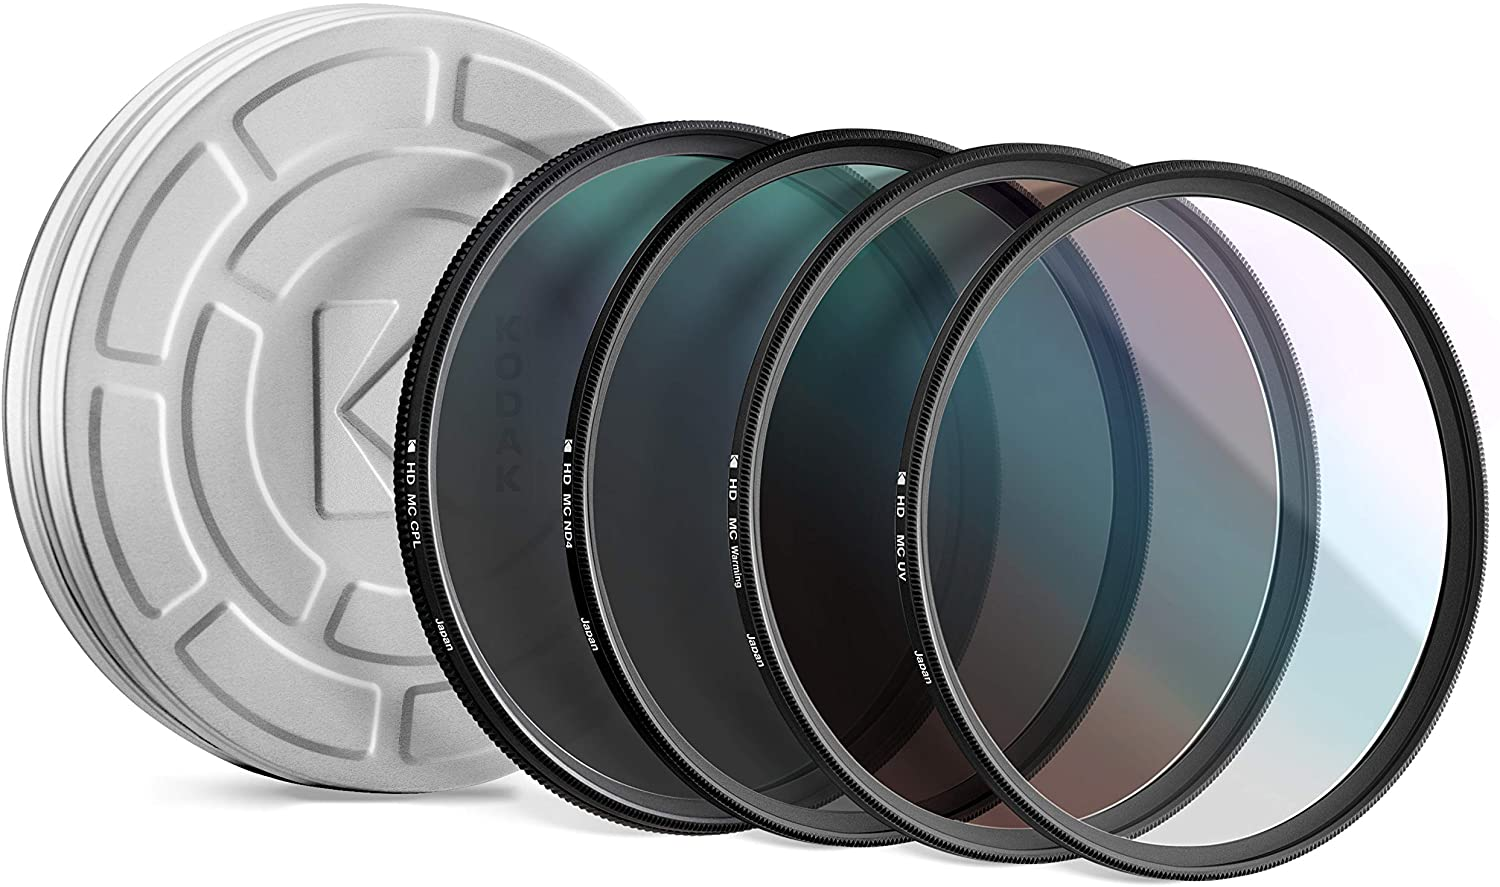 KODAK 72mm Filter Set UV, CPL, ND4 & Warming Filters - Absorb Atmospheric Haze Reduce Glare Prevent Overexposure Correct Color Add Warmth, Creative Effects | Slim, Multi-Coated Glass & Mini Guide